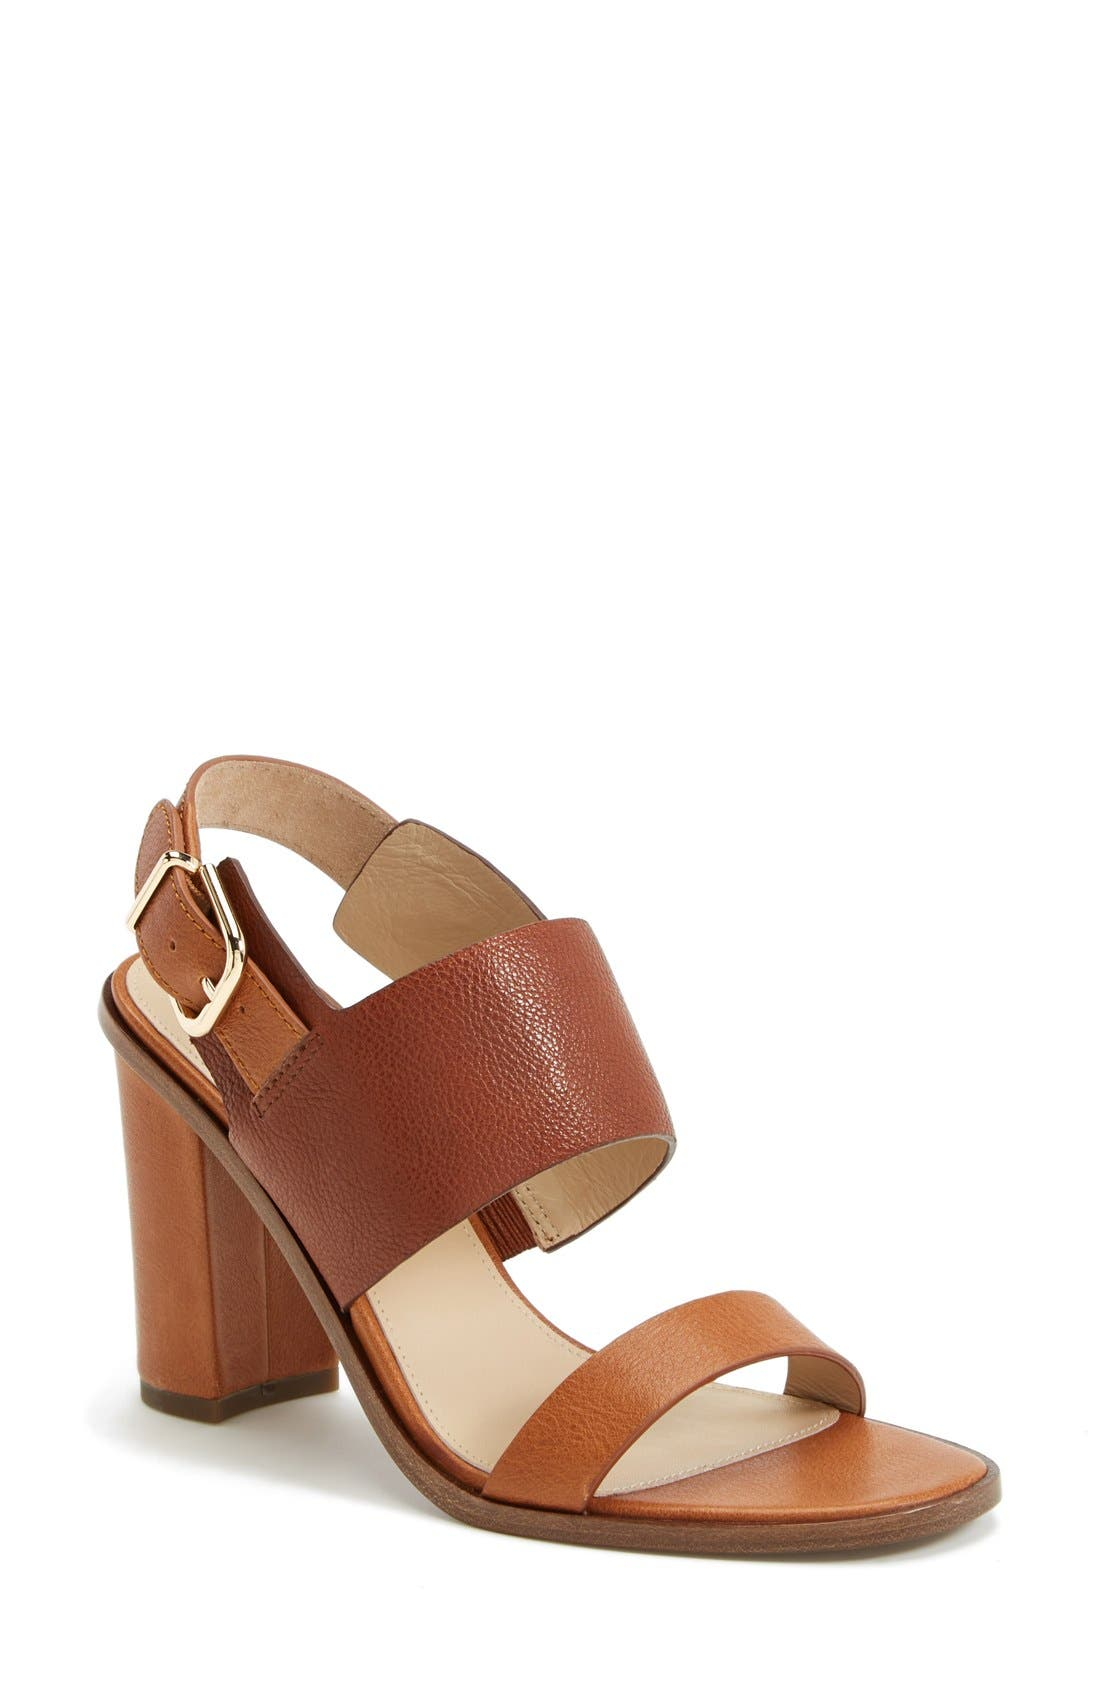 Main Image - Via Spiga 'Baris' Leather Slingback Sandal (Women) (Nordstrom Exclusive)